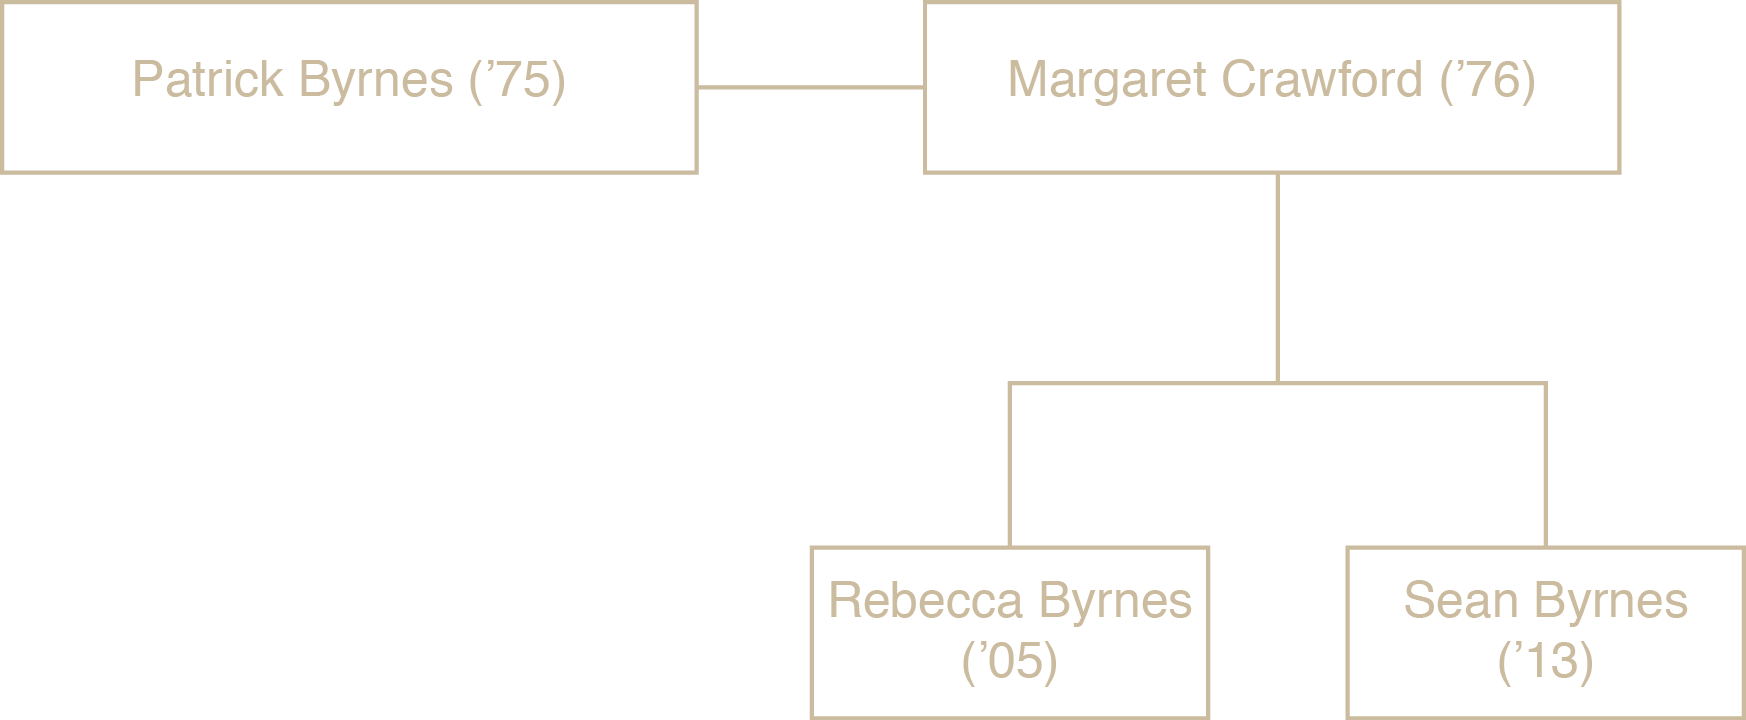 Byrnes family tree